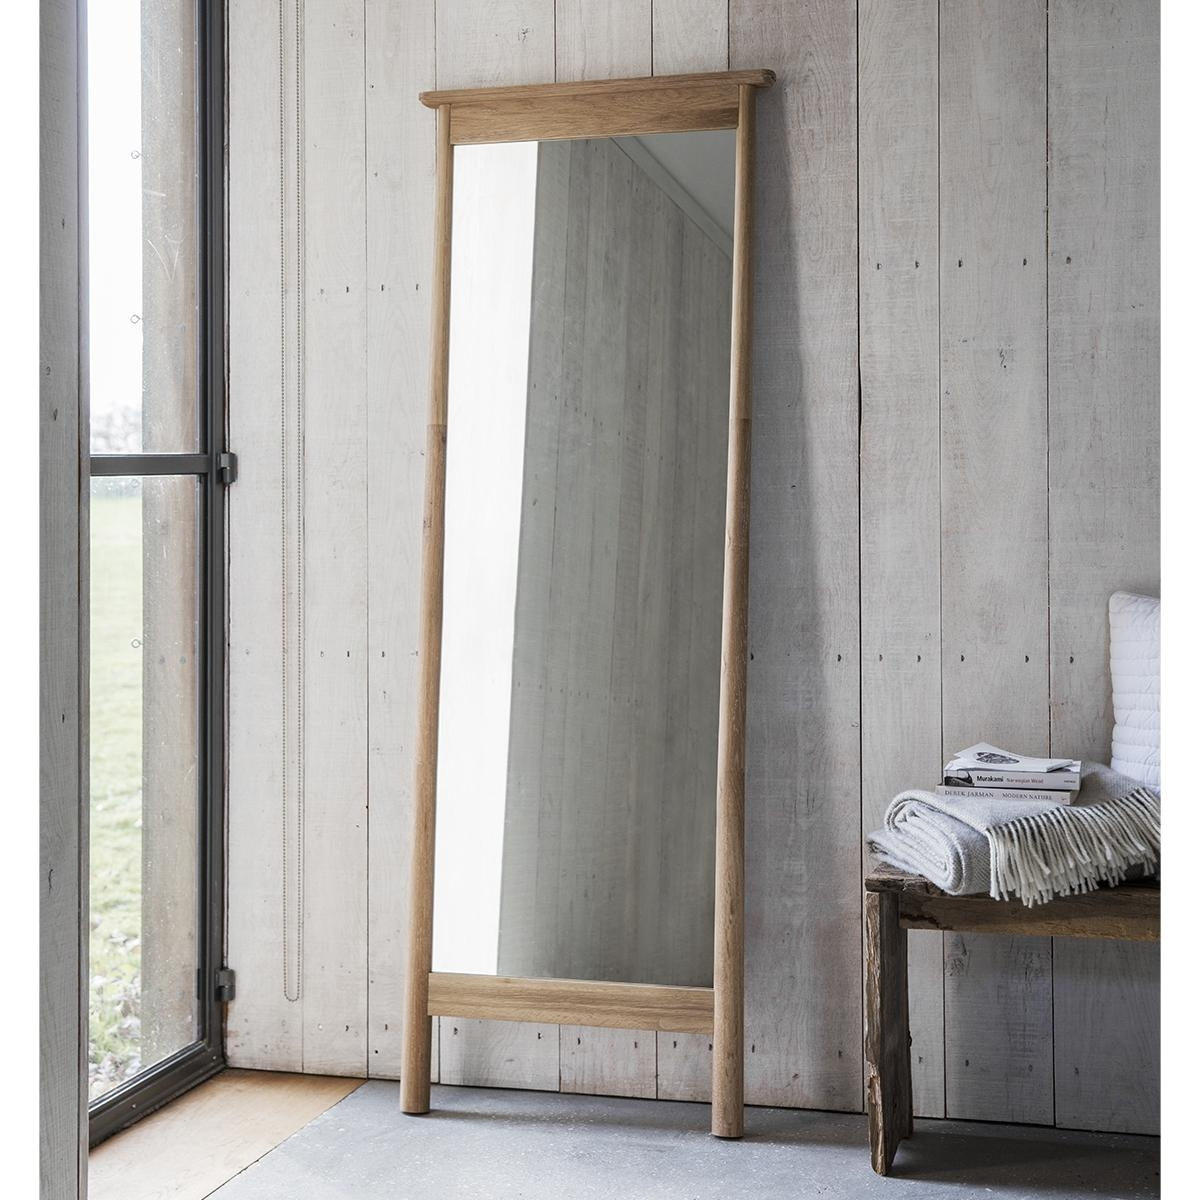 Wooden Framed Leaner Mirror 174 X 64Cm Wooden Framed Leaner Mirror Regarding Wooden Mirror (Image 15 of 20)